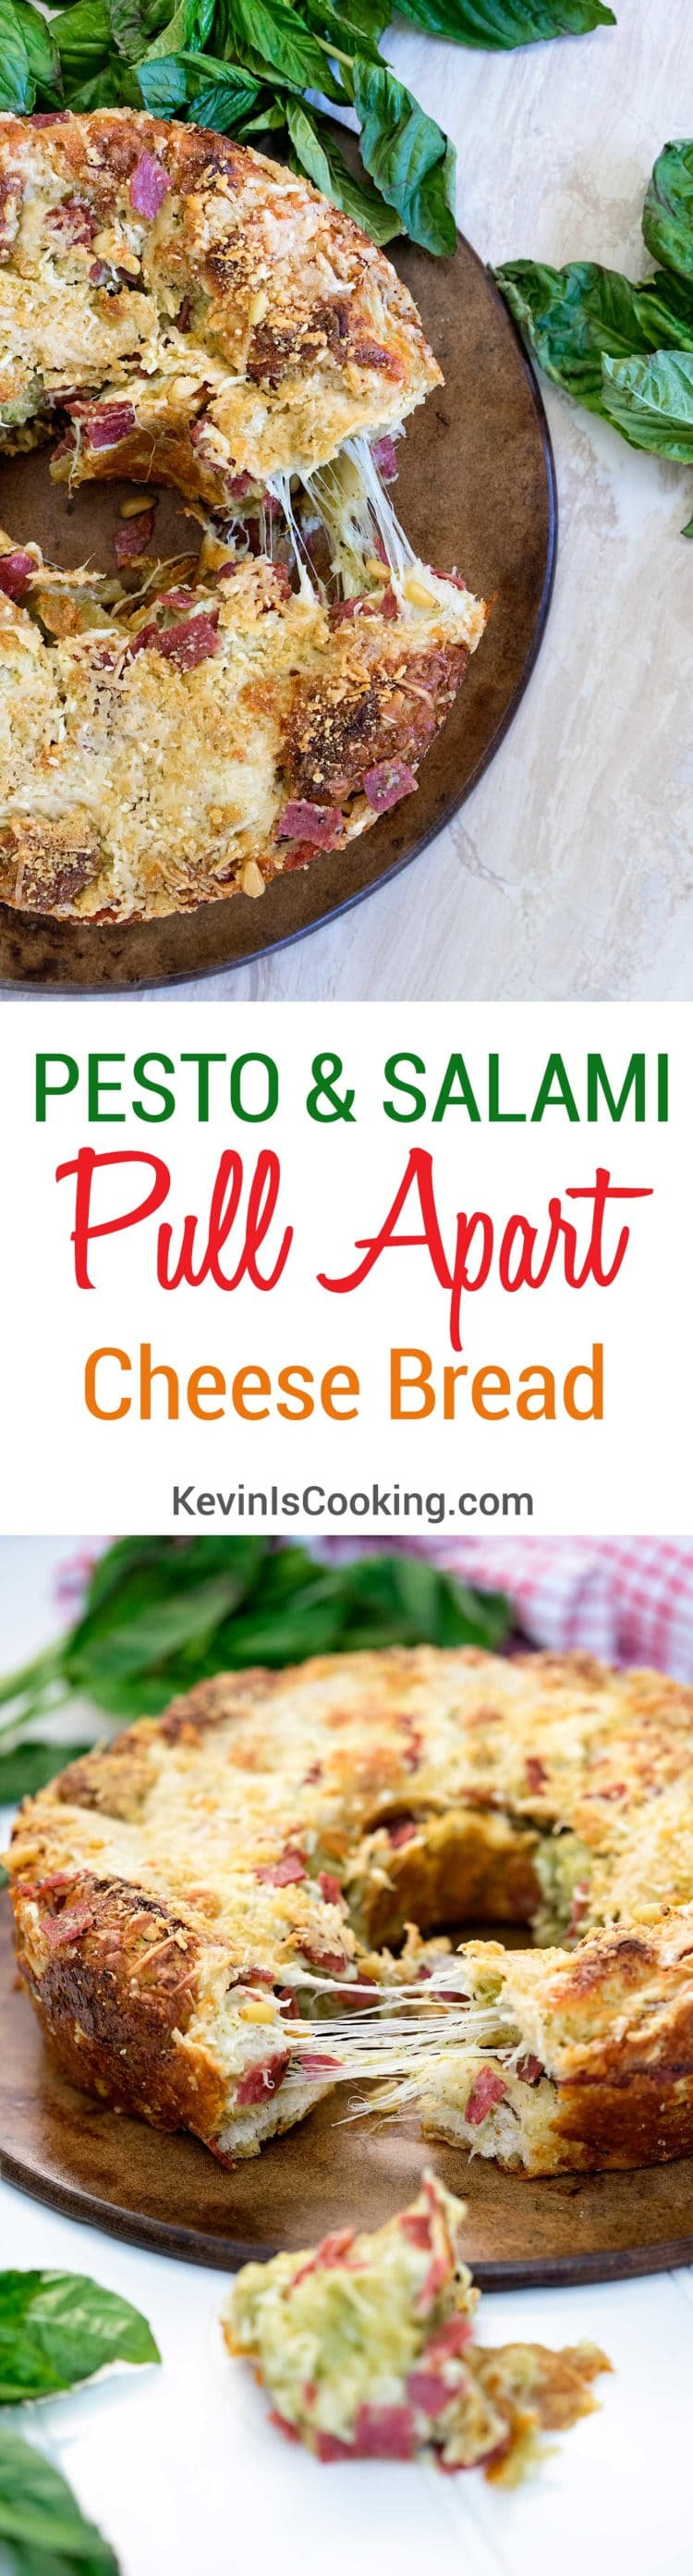 Pesto Salami Pull Apart Cheese Bread. www.keviniscooking.com